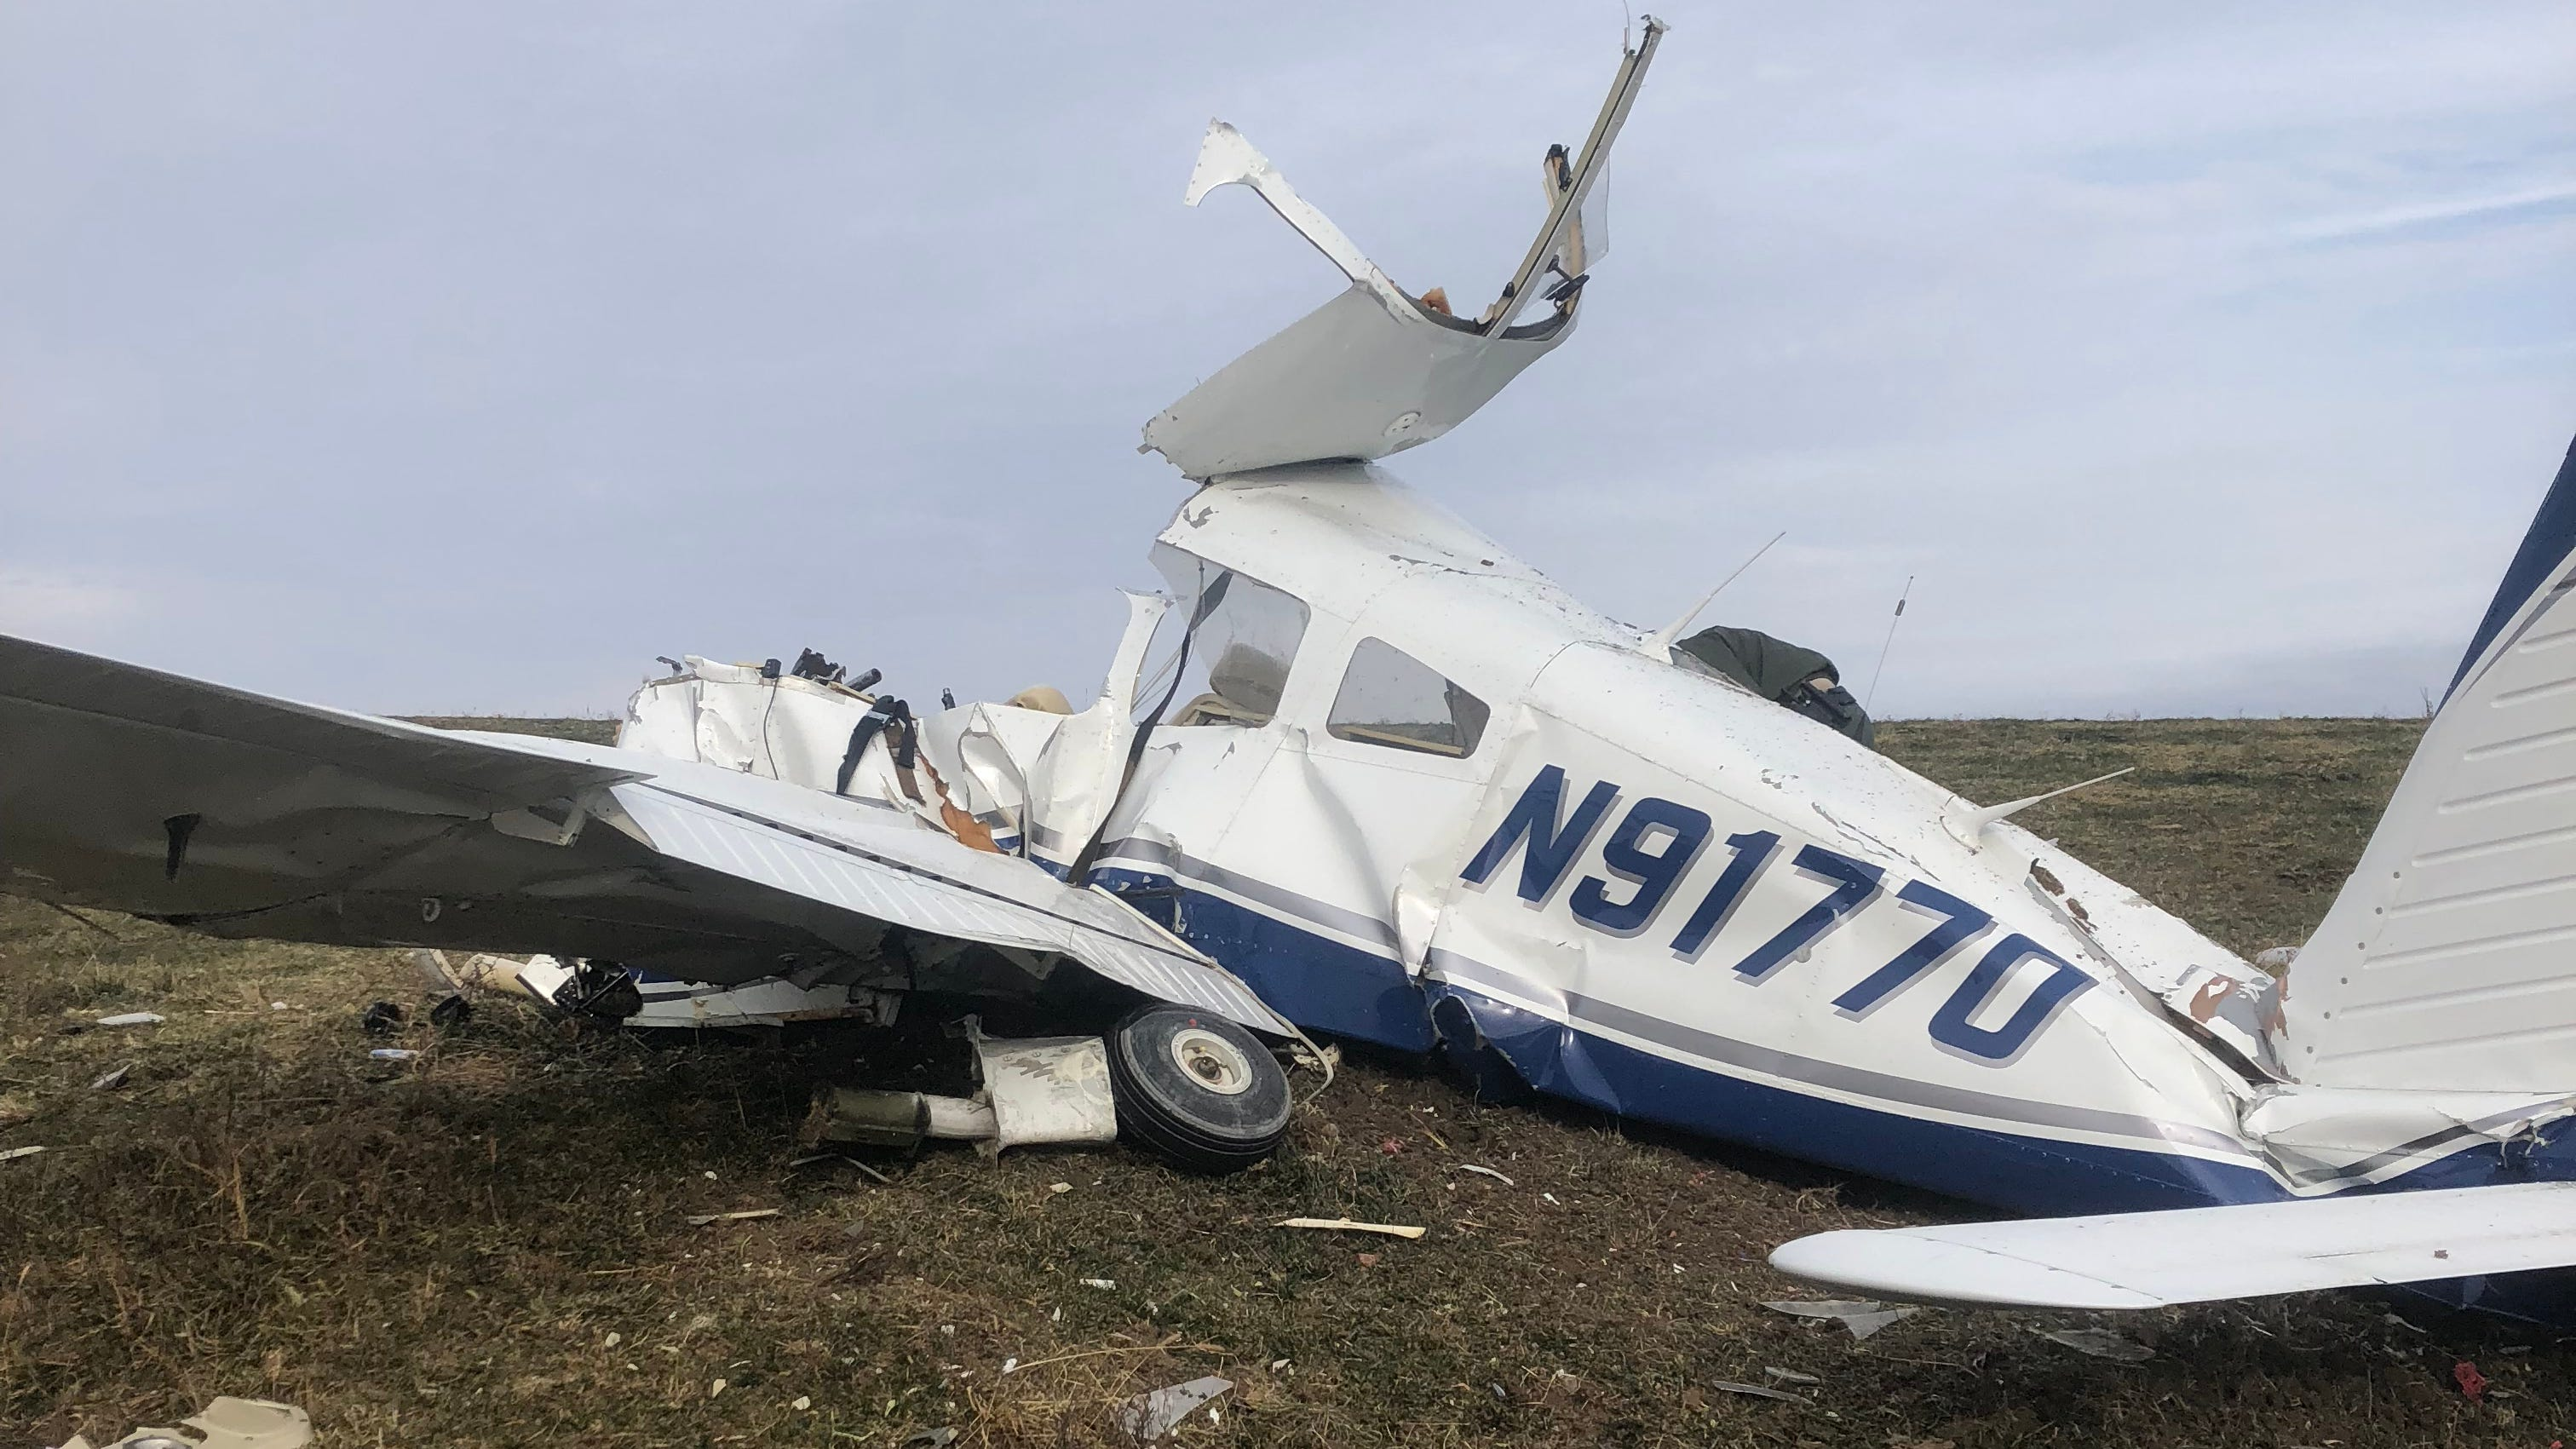 Autopsy: Carbon monoxide found in 4 killed in plane crash